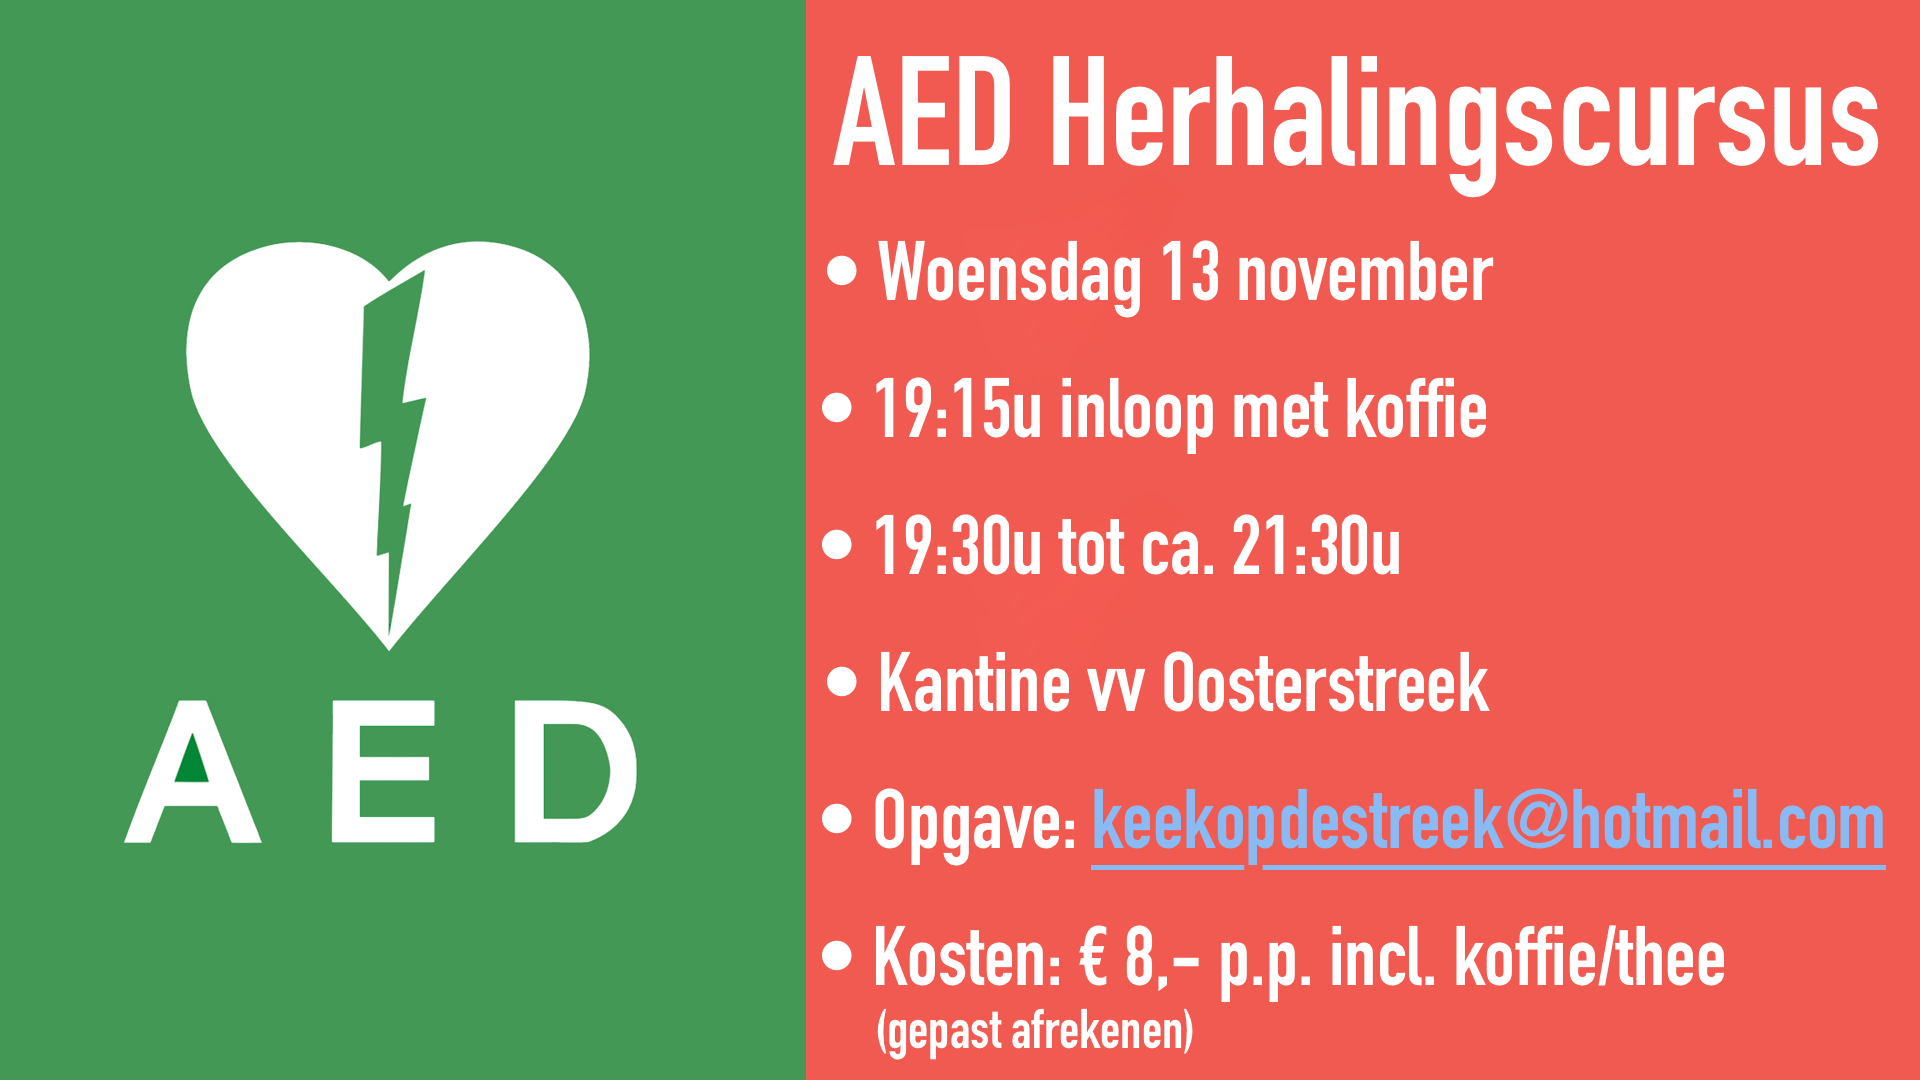 AED Herhaling